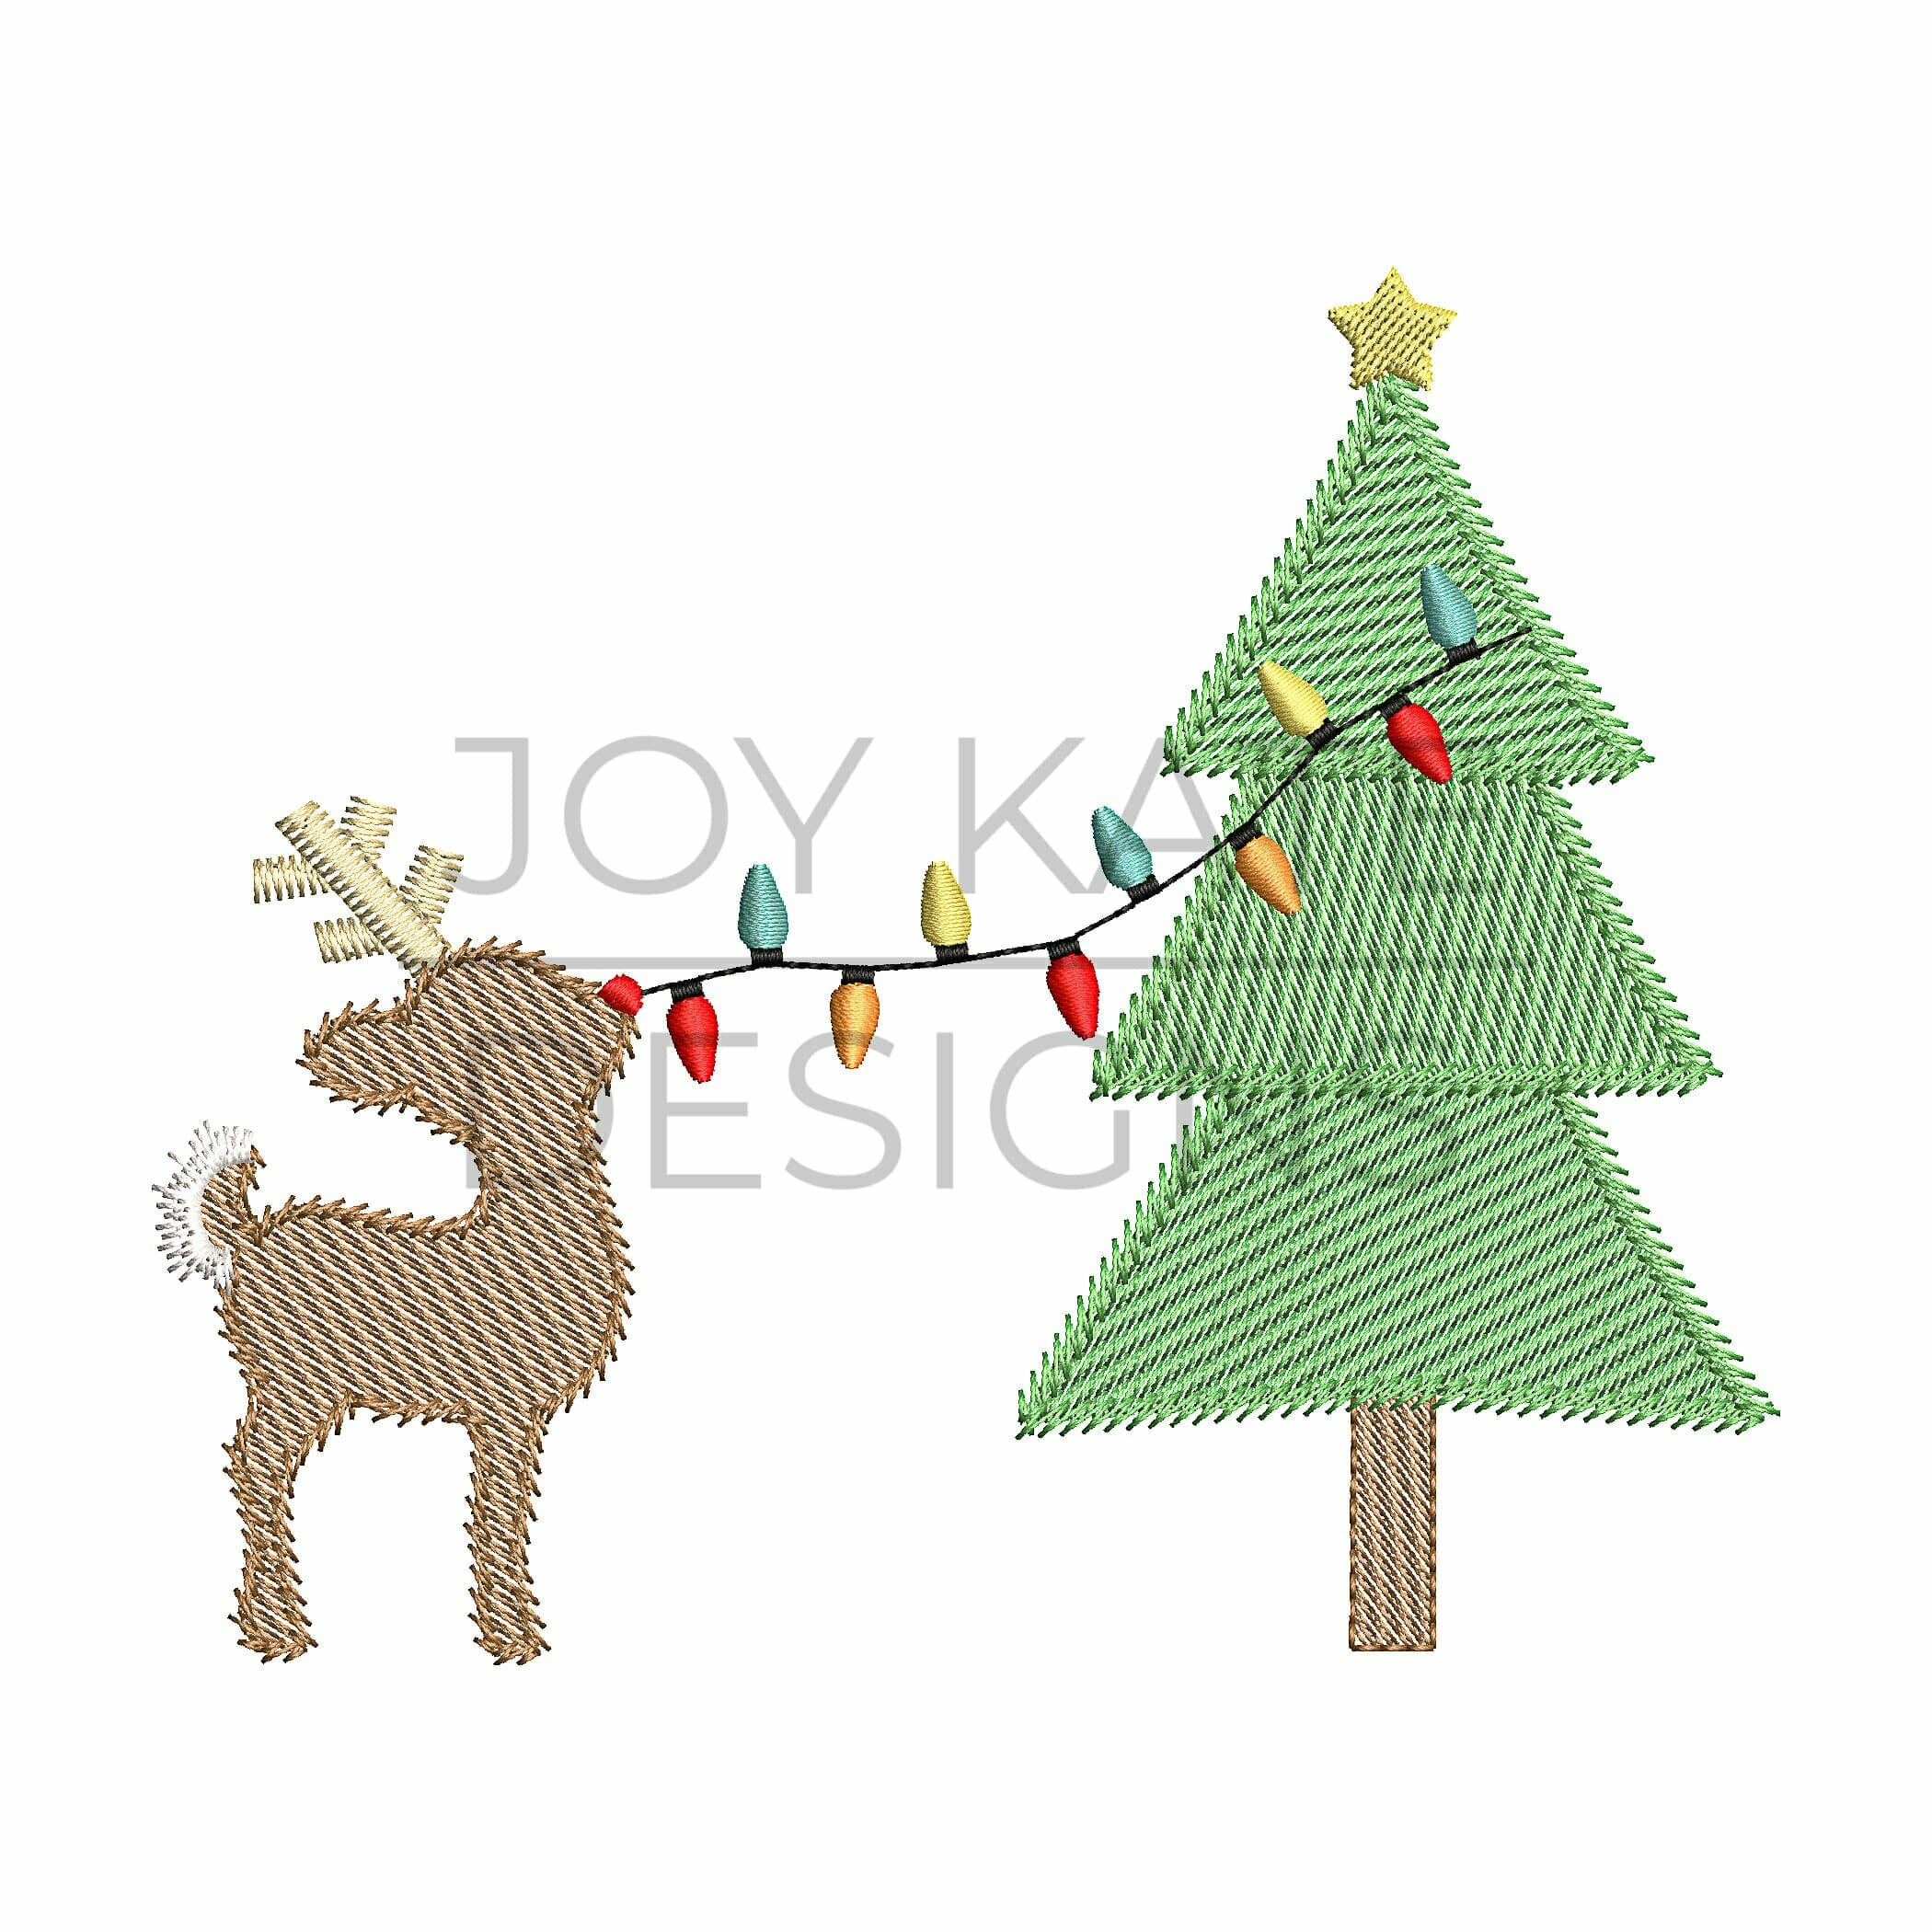 Christmas Designs.Reindeer Decorating Christmas Tree Sketch Embroidery Design